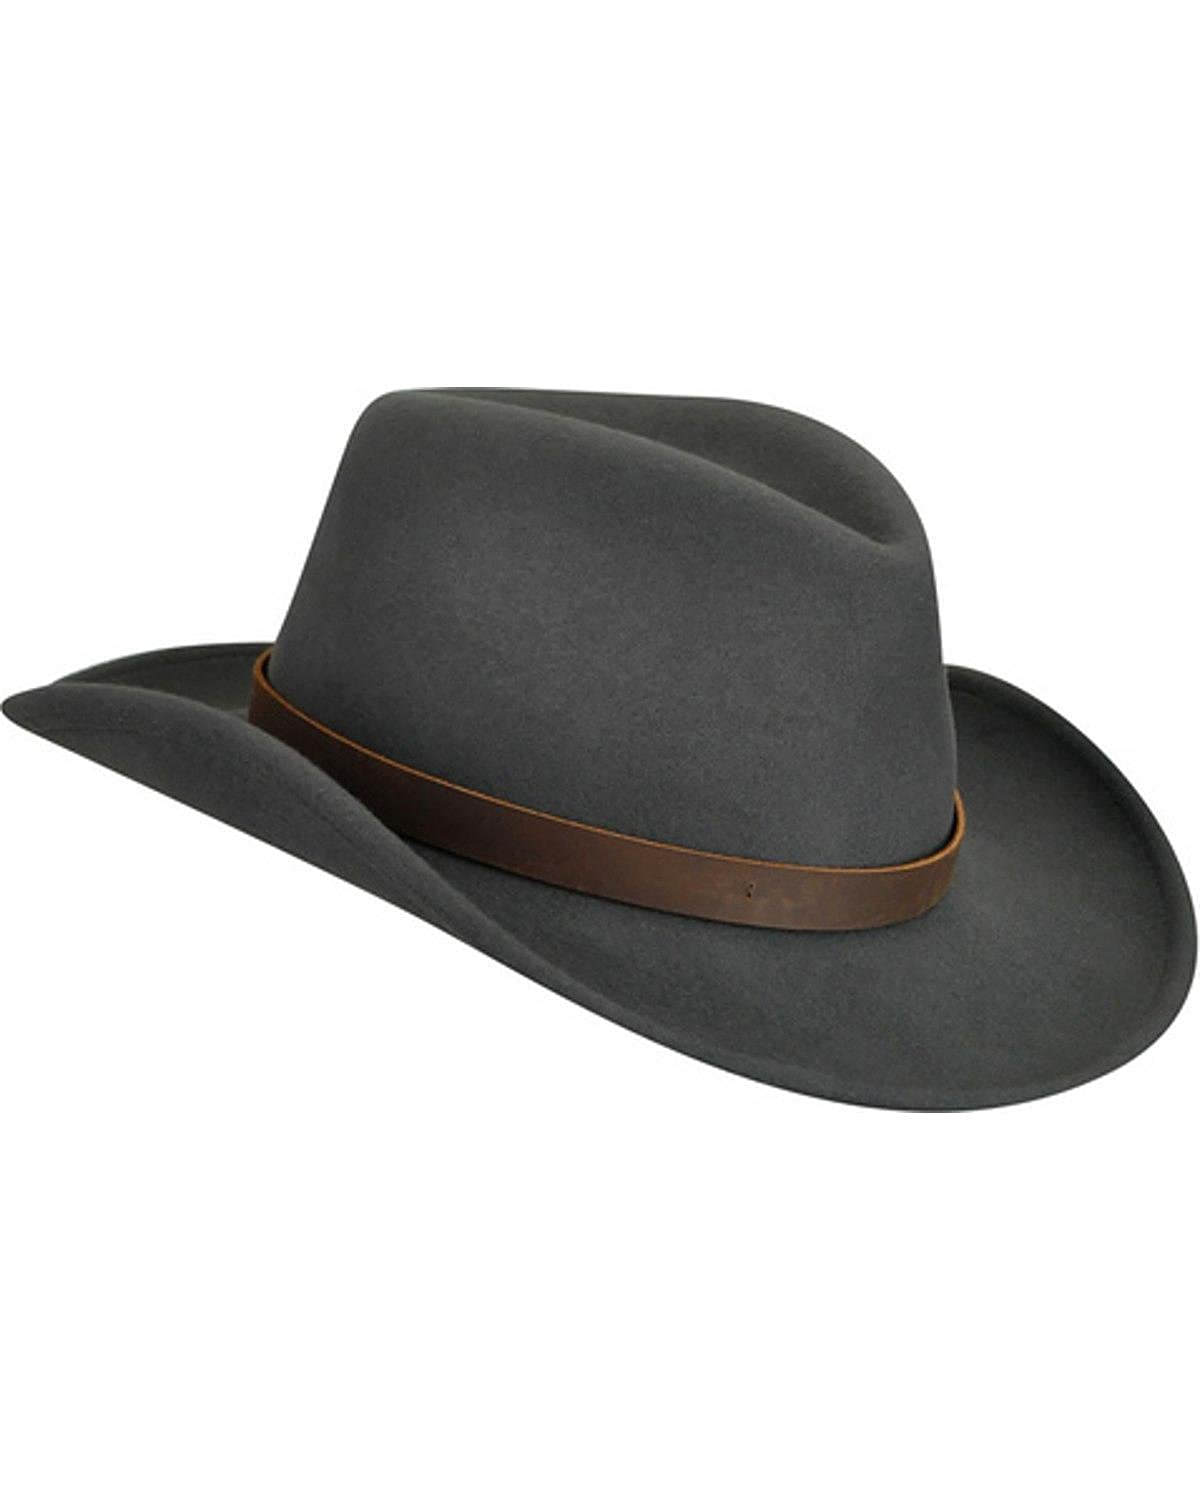 Wind River by Bailey Caliber Outback Hat